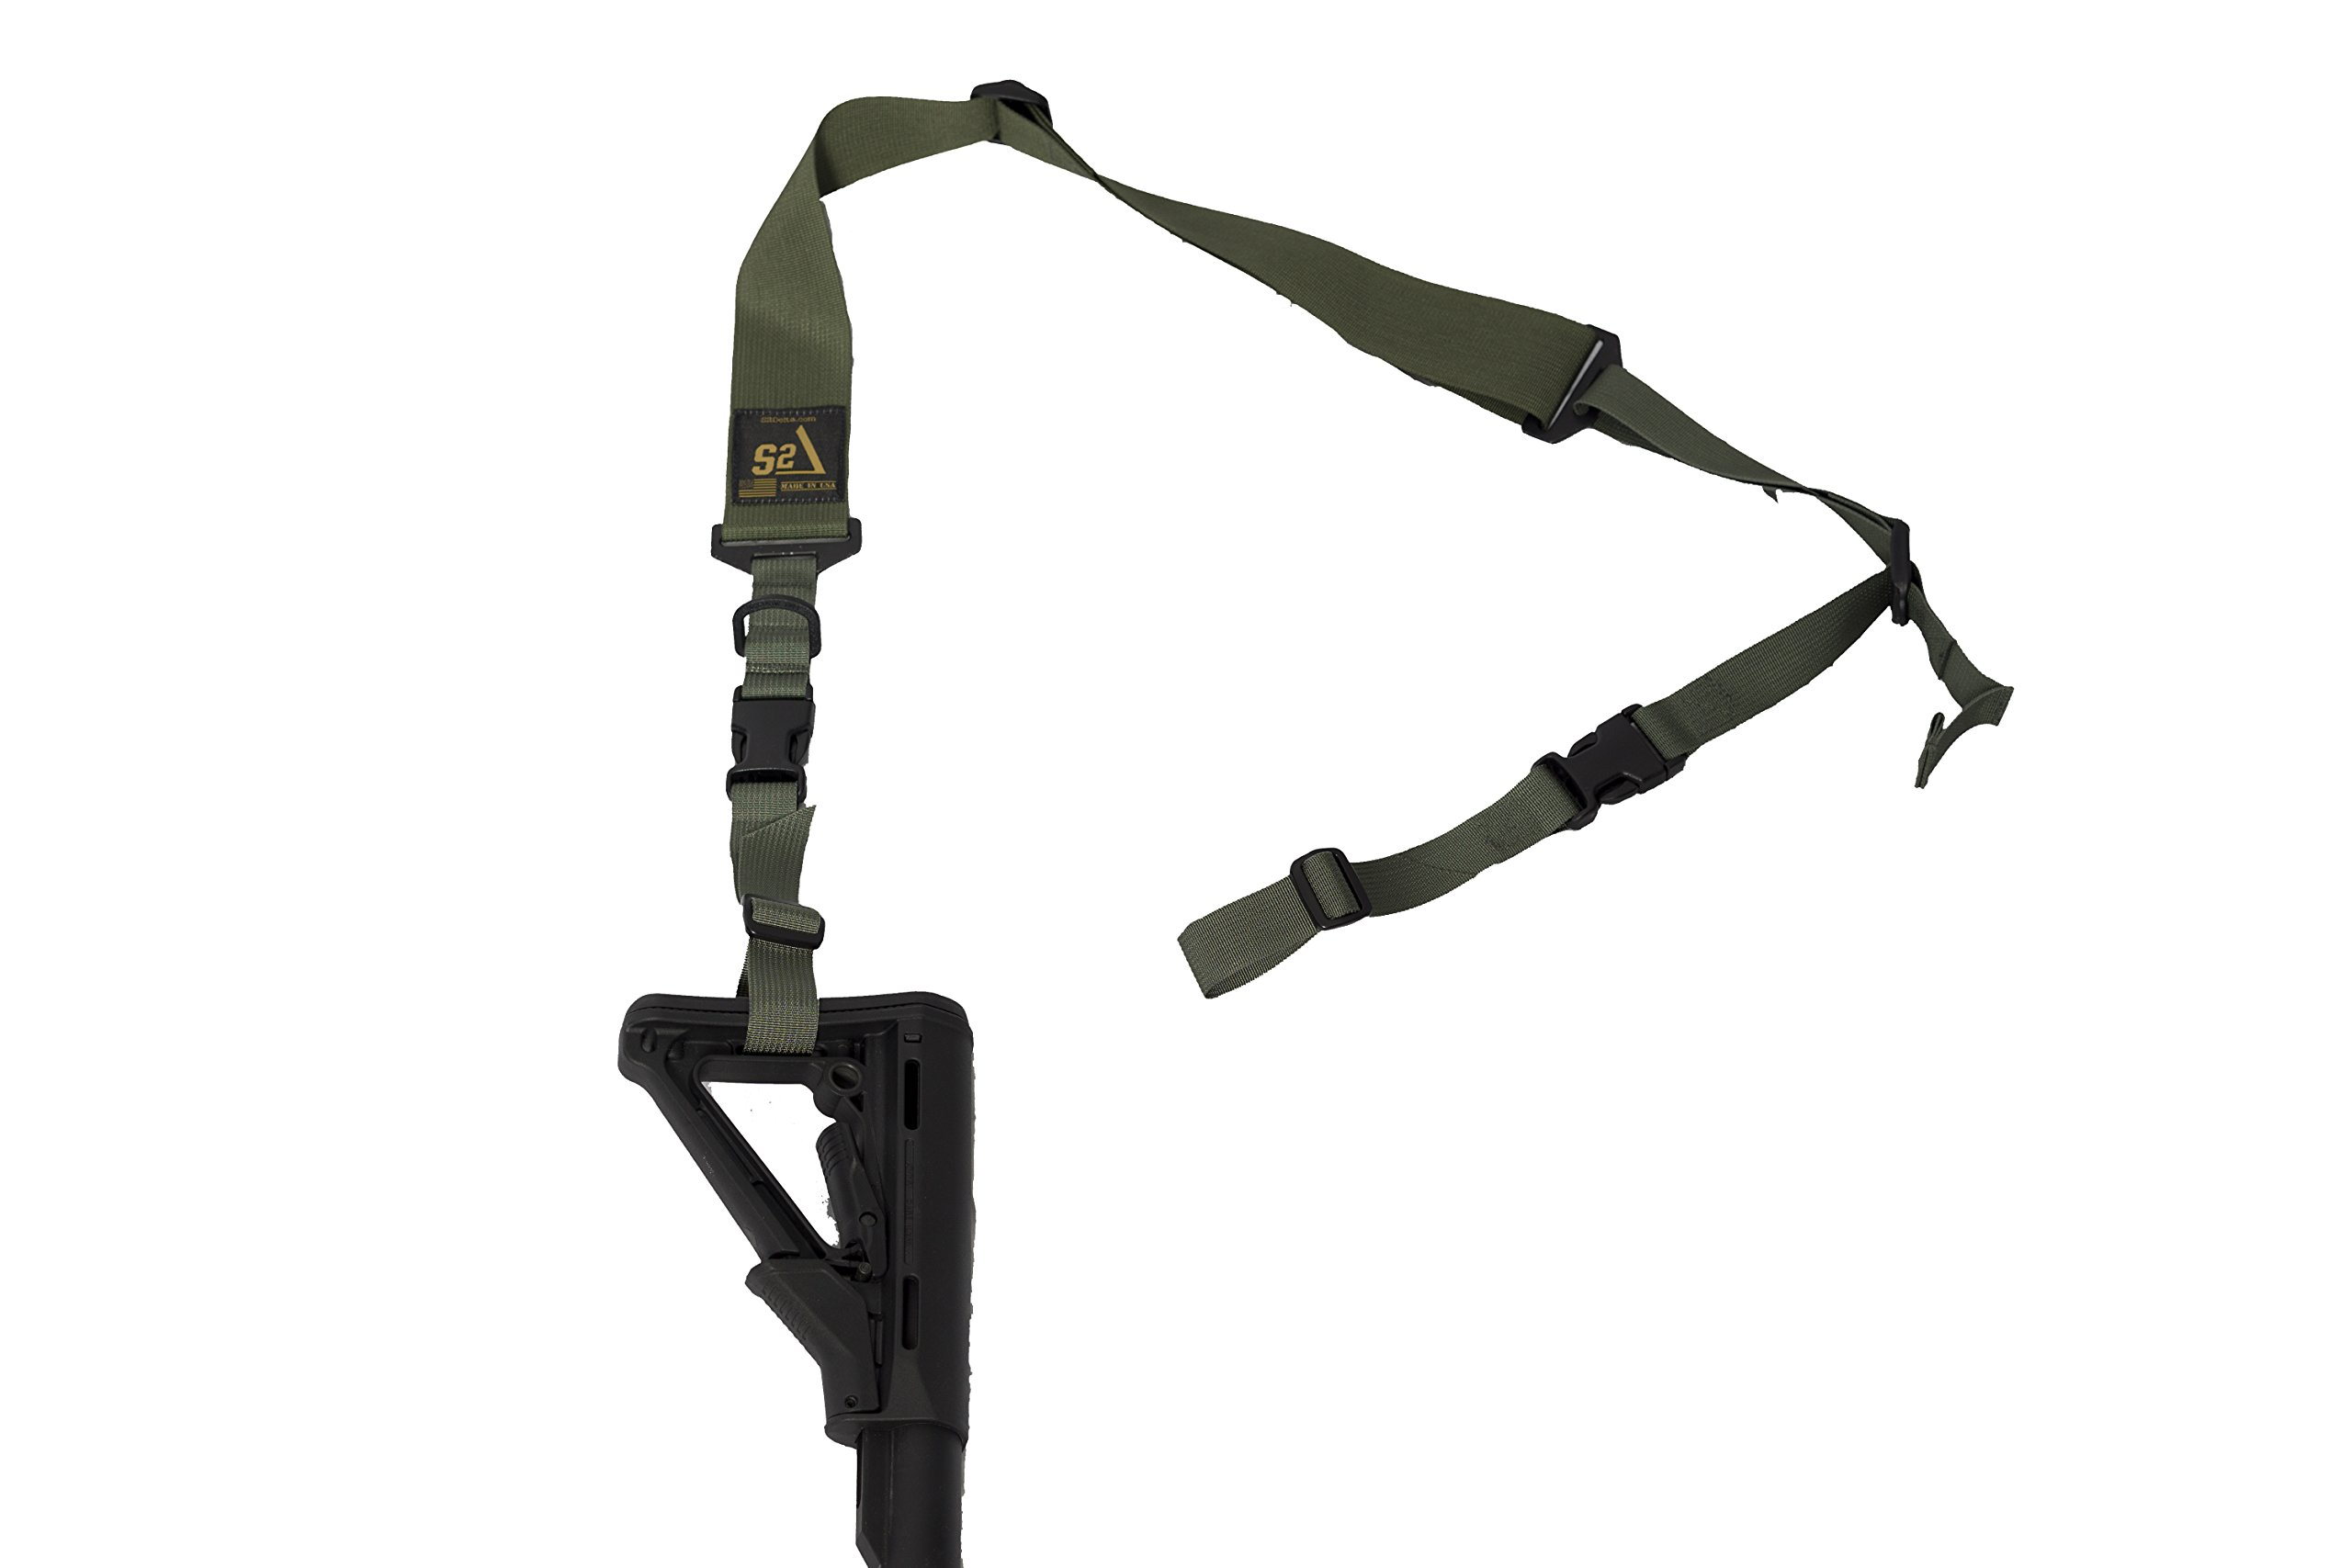 S2Delta - USA Made 2 Point Rifle Sling, Quick Adjustment, Modular Attachment Connections, Comfortable 2'' Wide Shoulder Strap to 1'' Attachment Ends (Green Sling, Pigtail Connector) by S2Delta